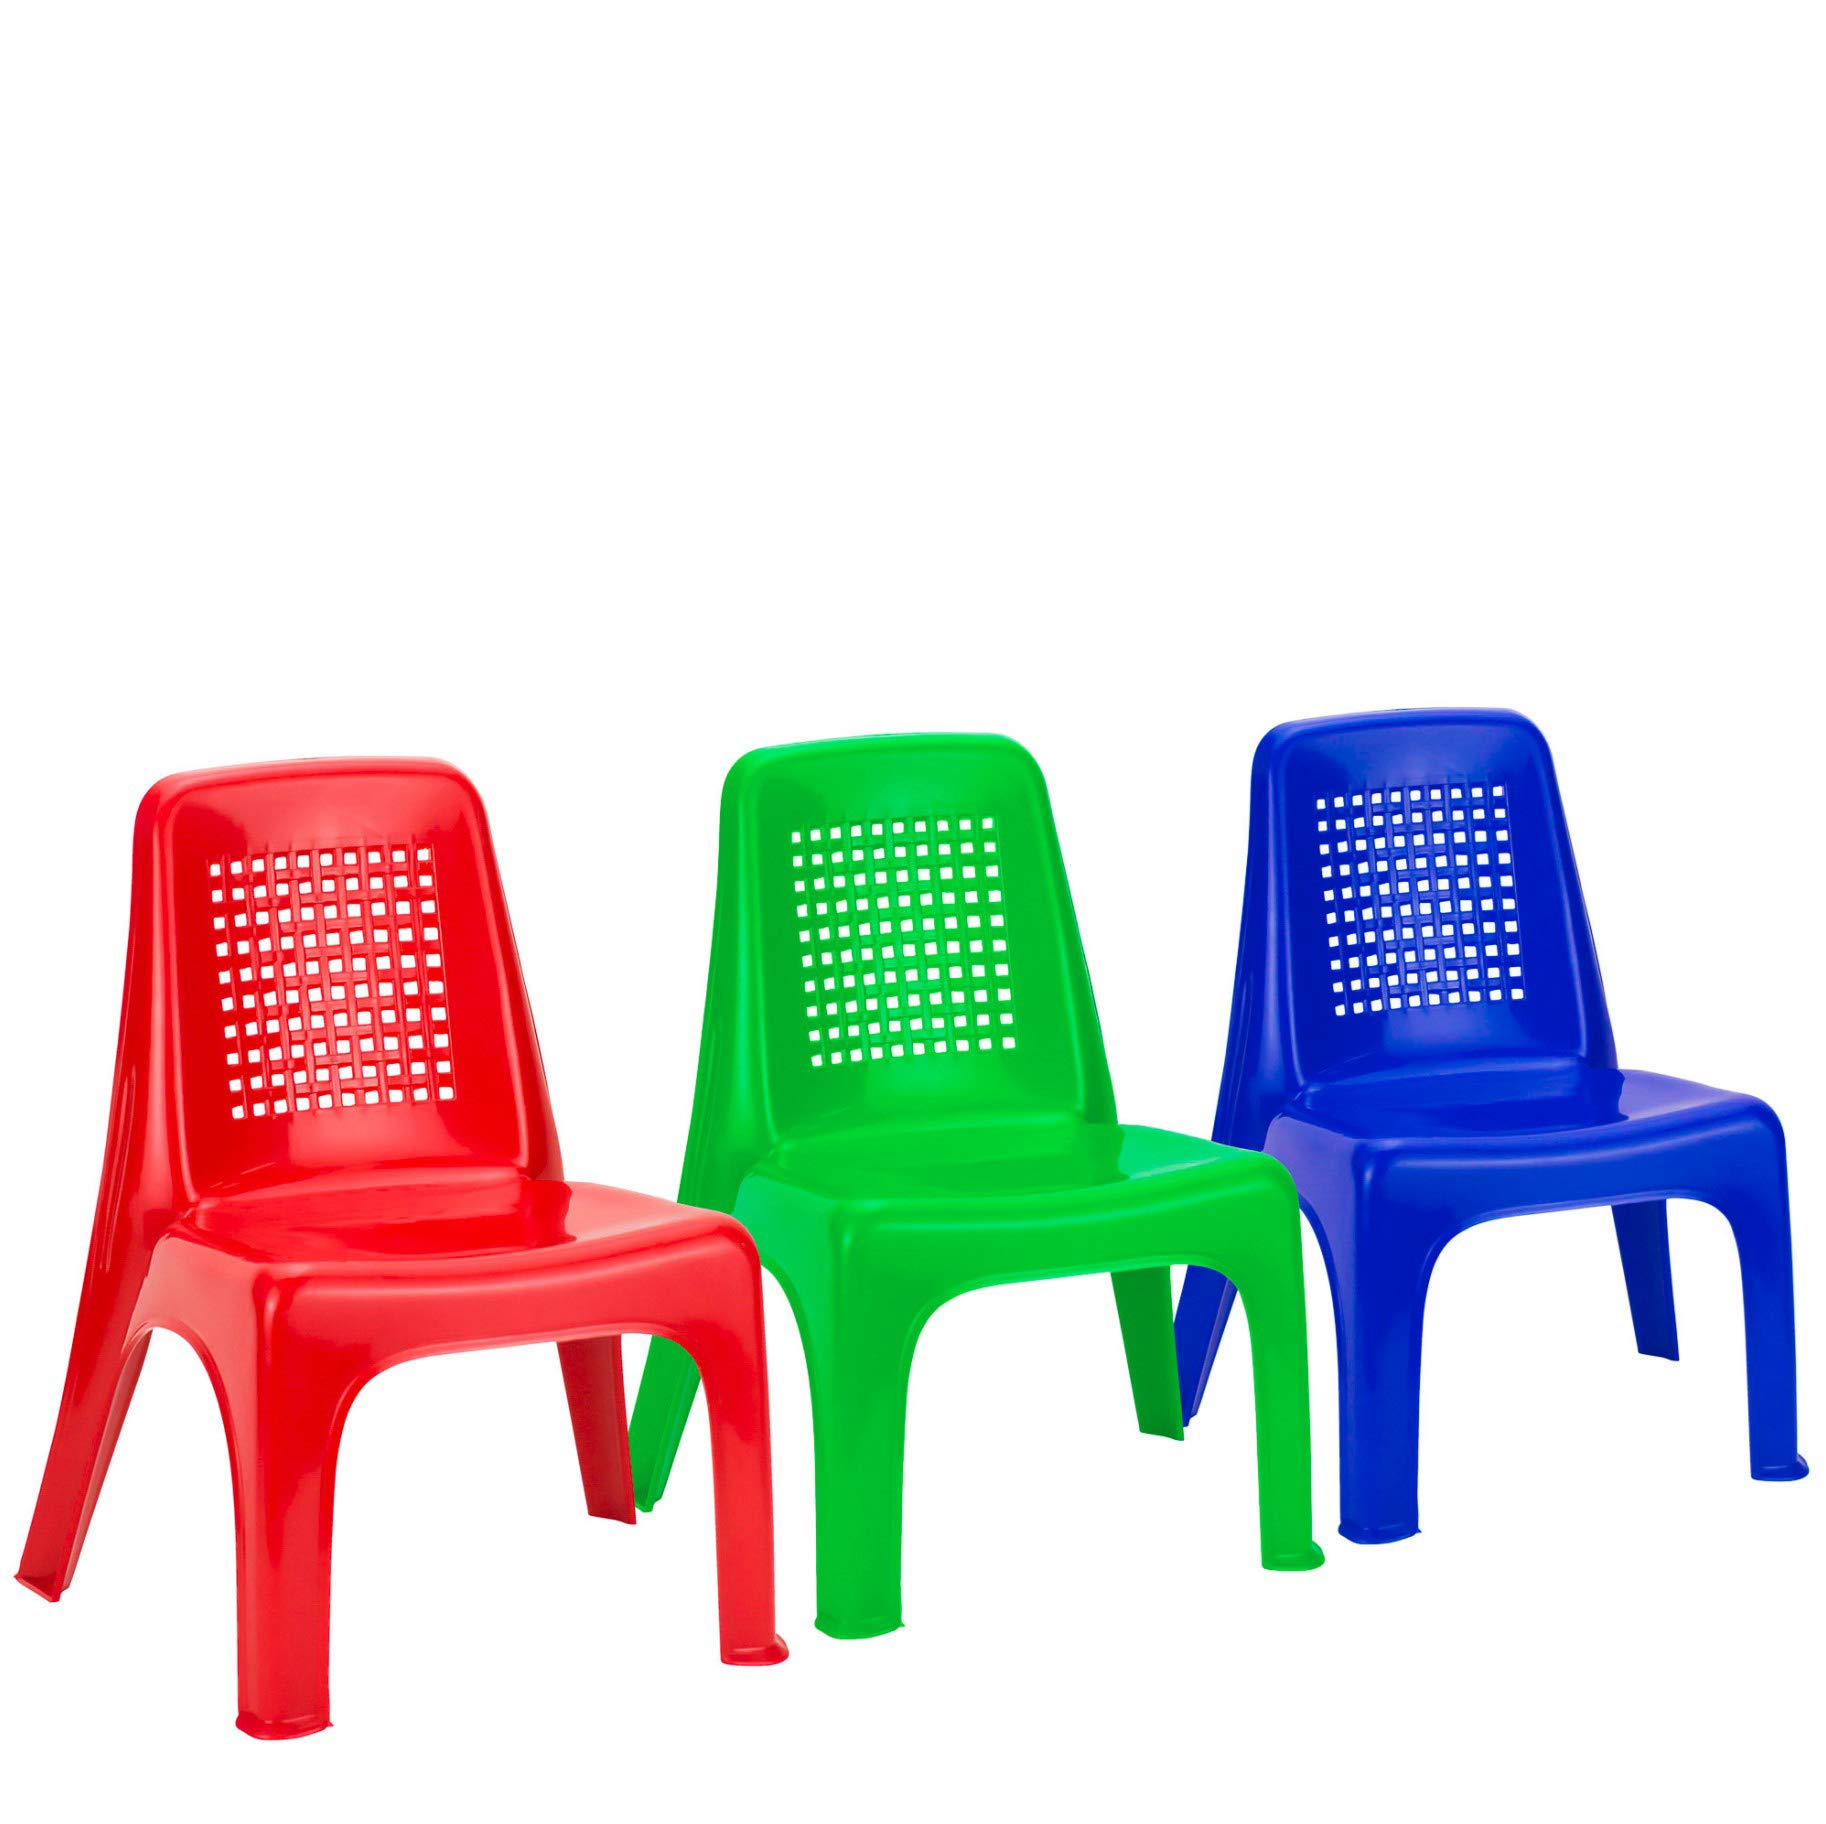 DecorRack 6 Toddler Chairs, BPA Free- Plastic Small Child Chair Set, Stackable Lightweight Portable Activity Furniture, Seat Kids Indoor Outdoor Beach Preschool Camping, Portable Play Chairs (6 Pack)